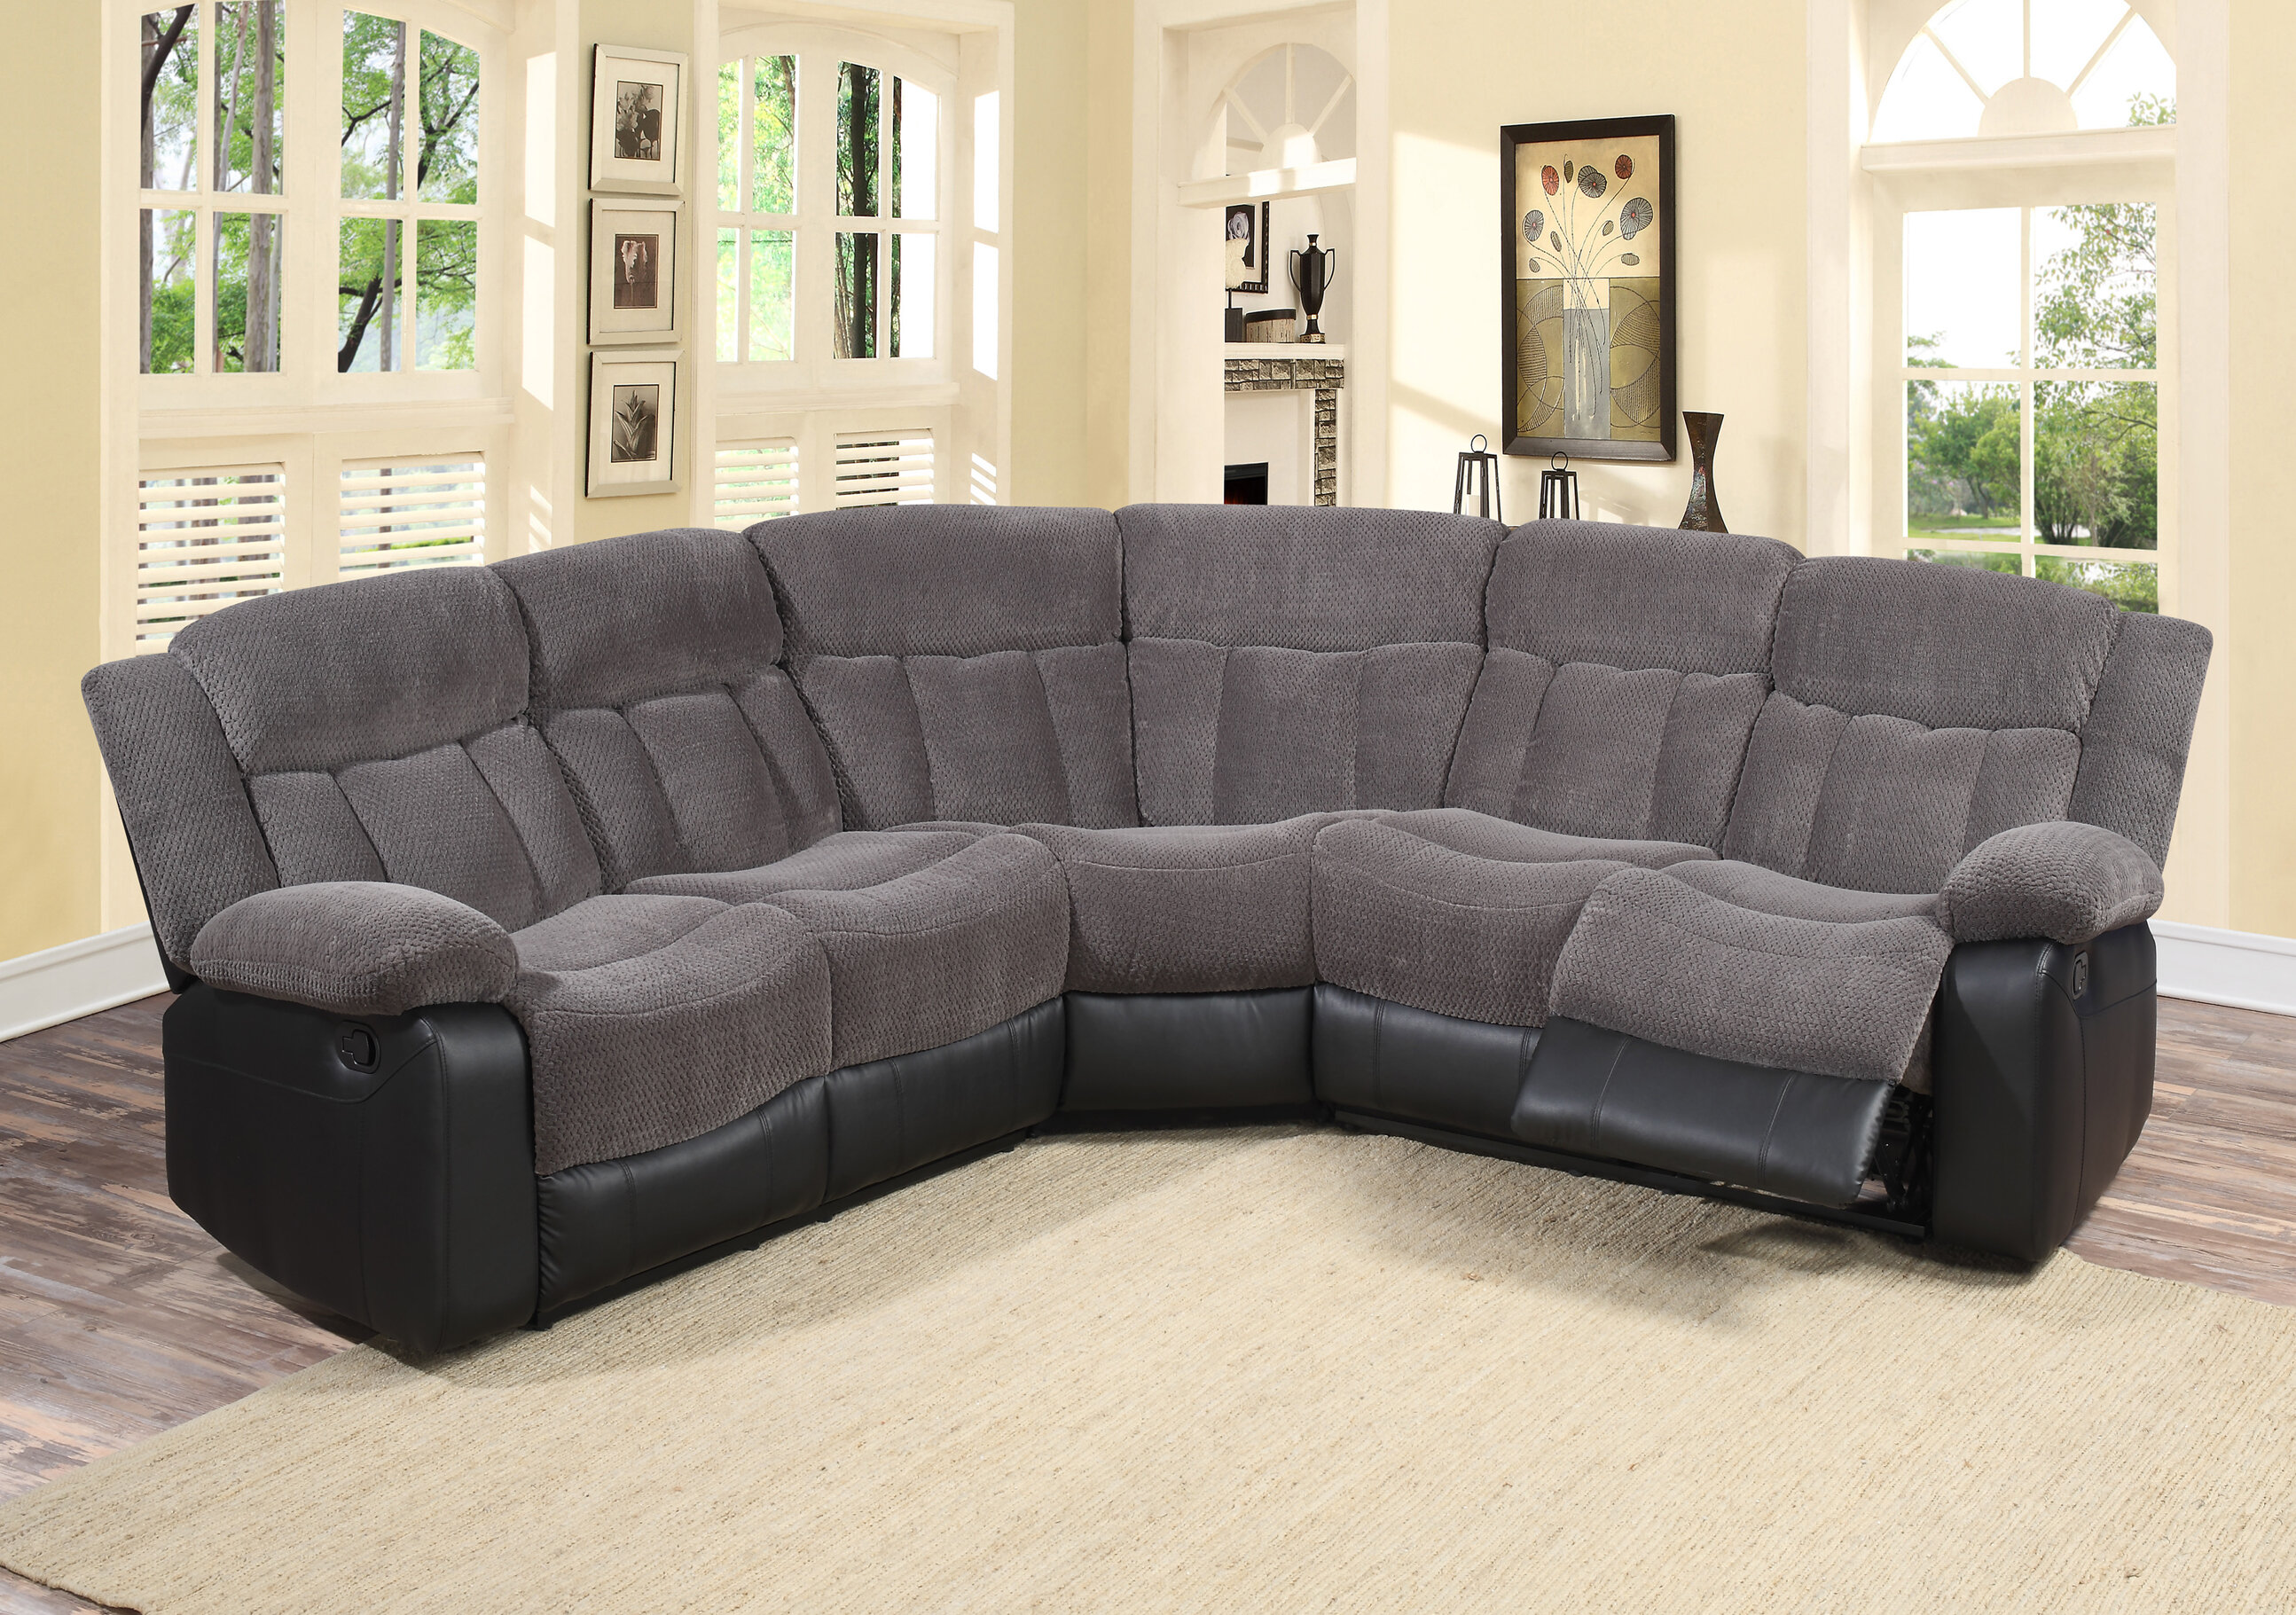 ivory furniture recliner with sofa living cream importance recliners full brown slipcovers modern of black affordable sofas leather size microfiber room in sectional couch chaise grey a fabric gray